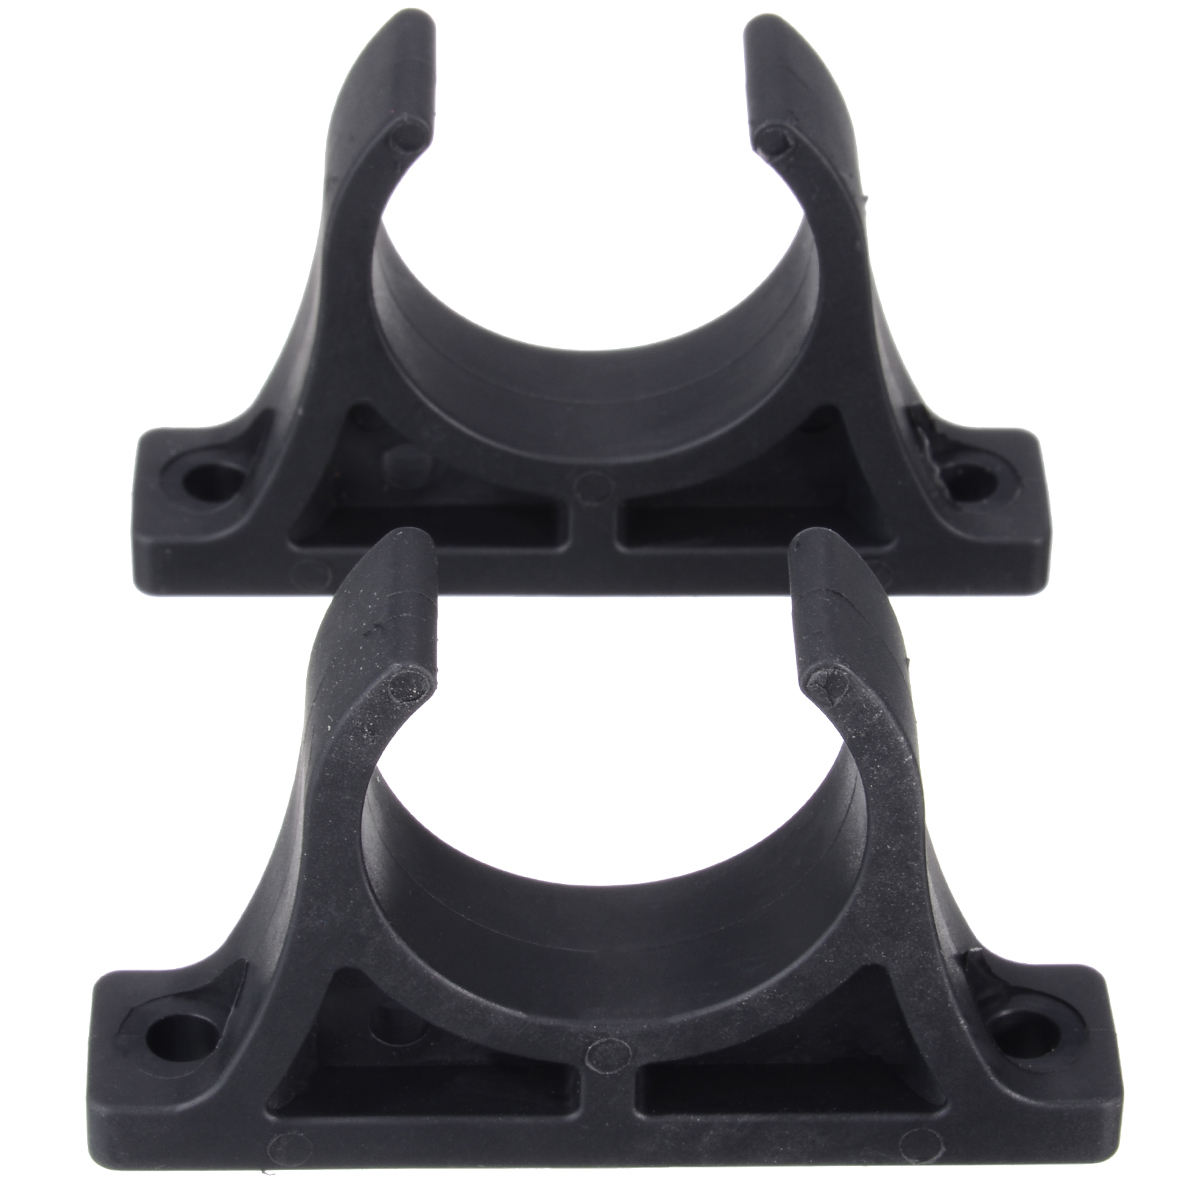 2pcs Plastic Kayak Boat Paddle Holder Mount Clips Watercraft Accessories For Kayaks Canoes And Rowing Boats